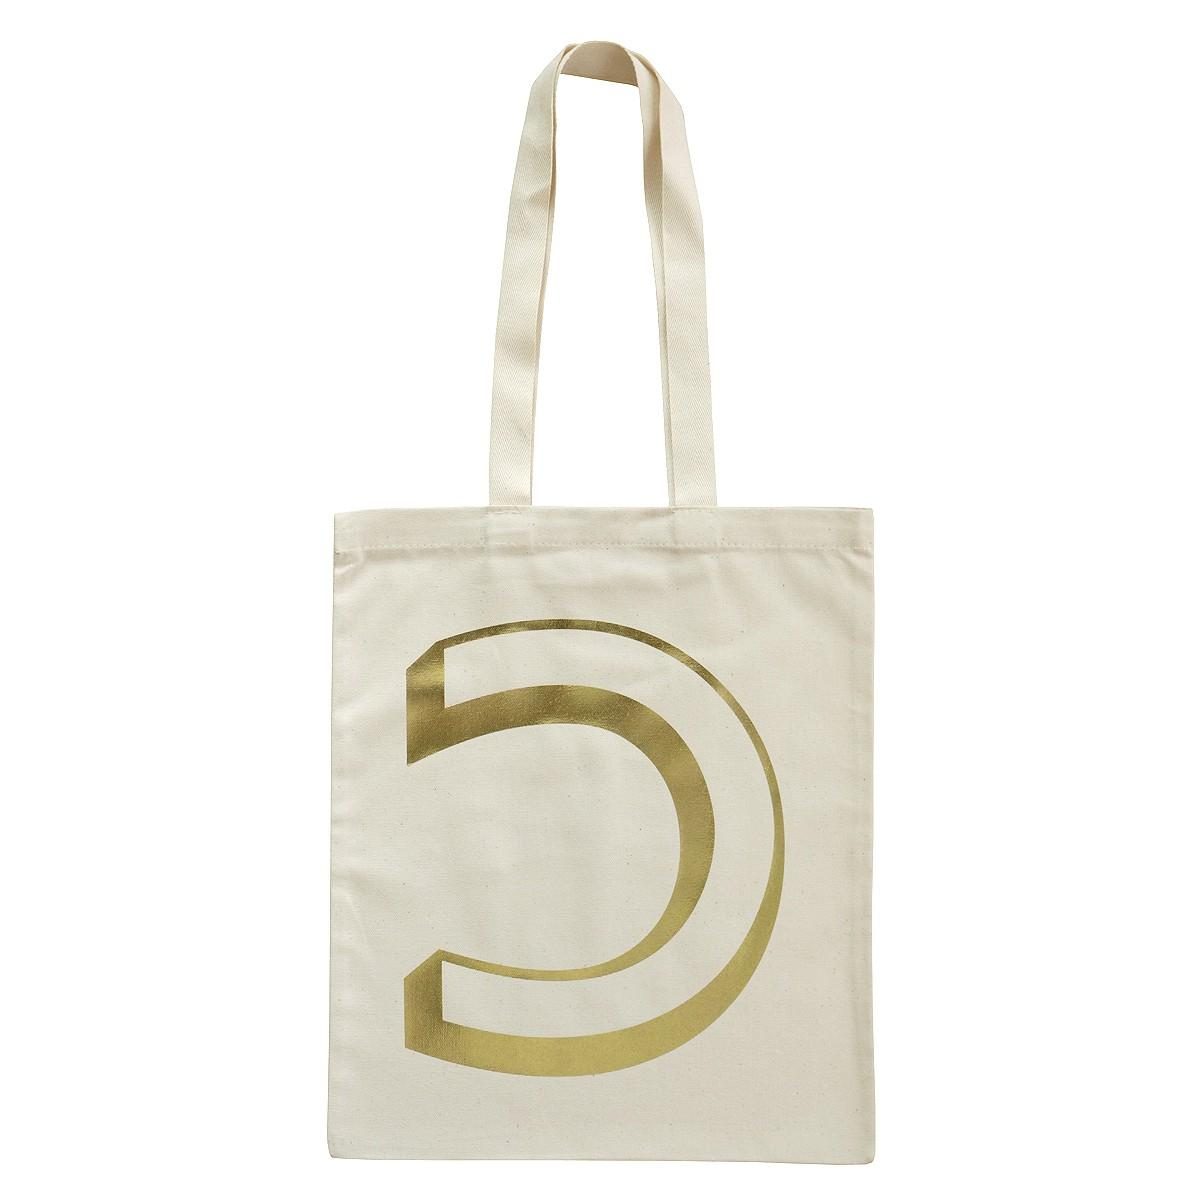 INITIAL COTTON TOTE BAG: GOLD